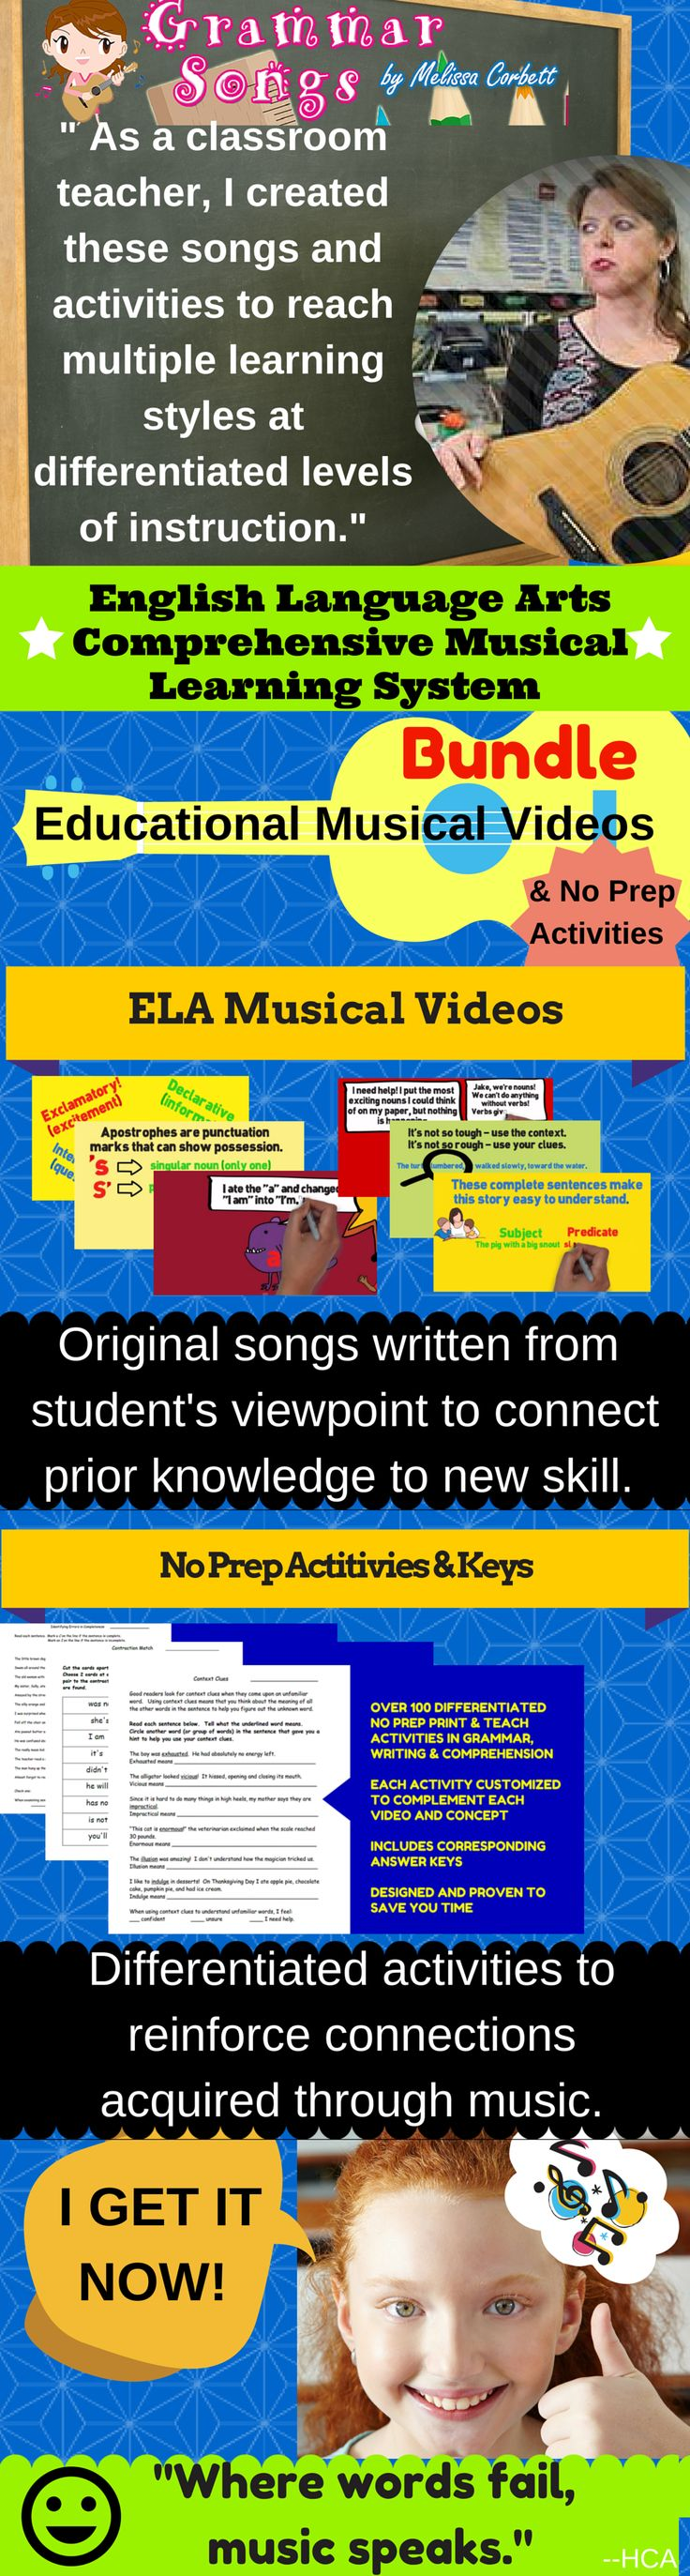 Innovative Methodologies For Interactive Classroom Learning : Curated fourth grade grammar songs by melissa ideas